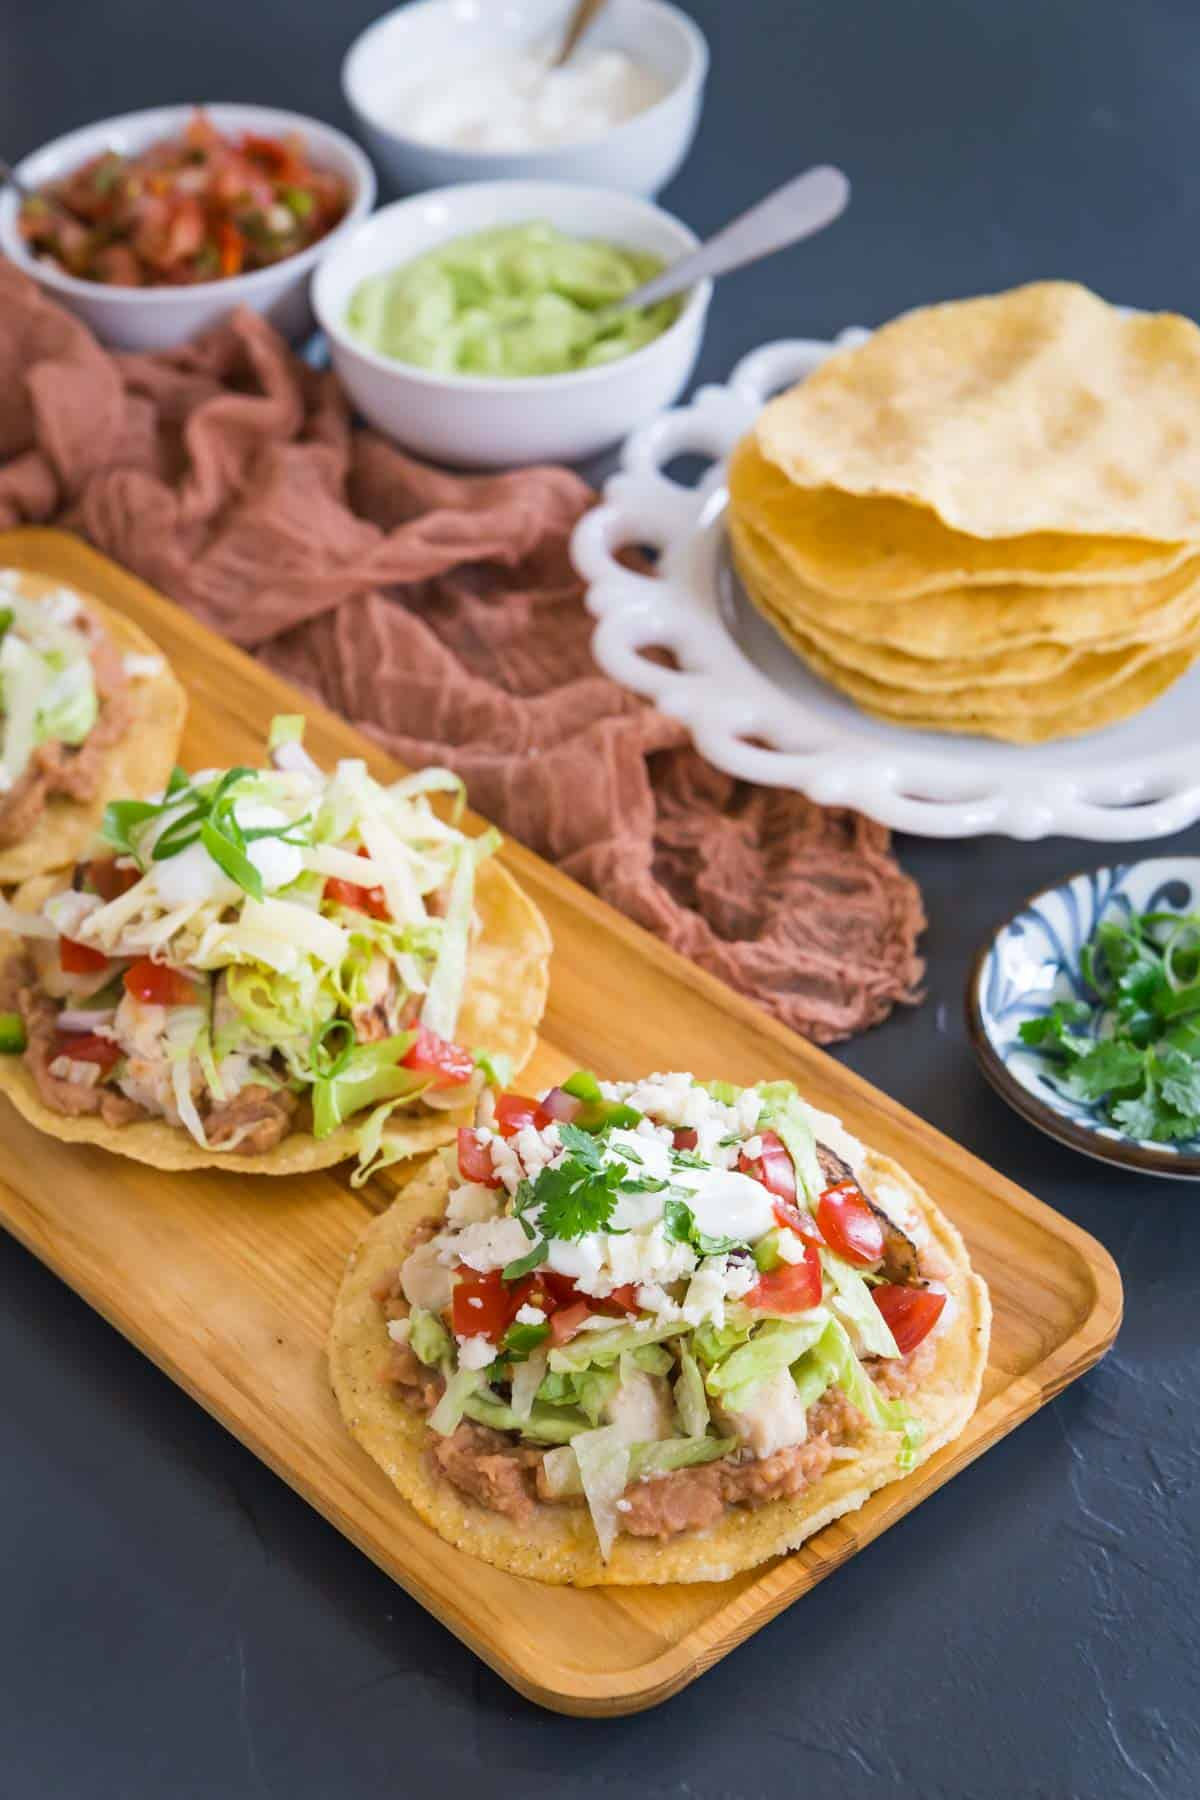 three chicken tostadas on a wooden serving platter with a plate of tostada shells and bowls of salsa, sour cream, and guacamole